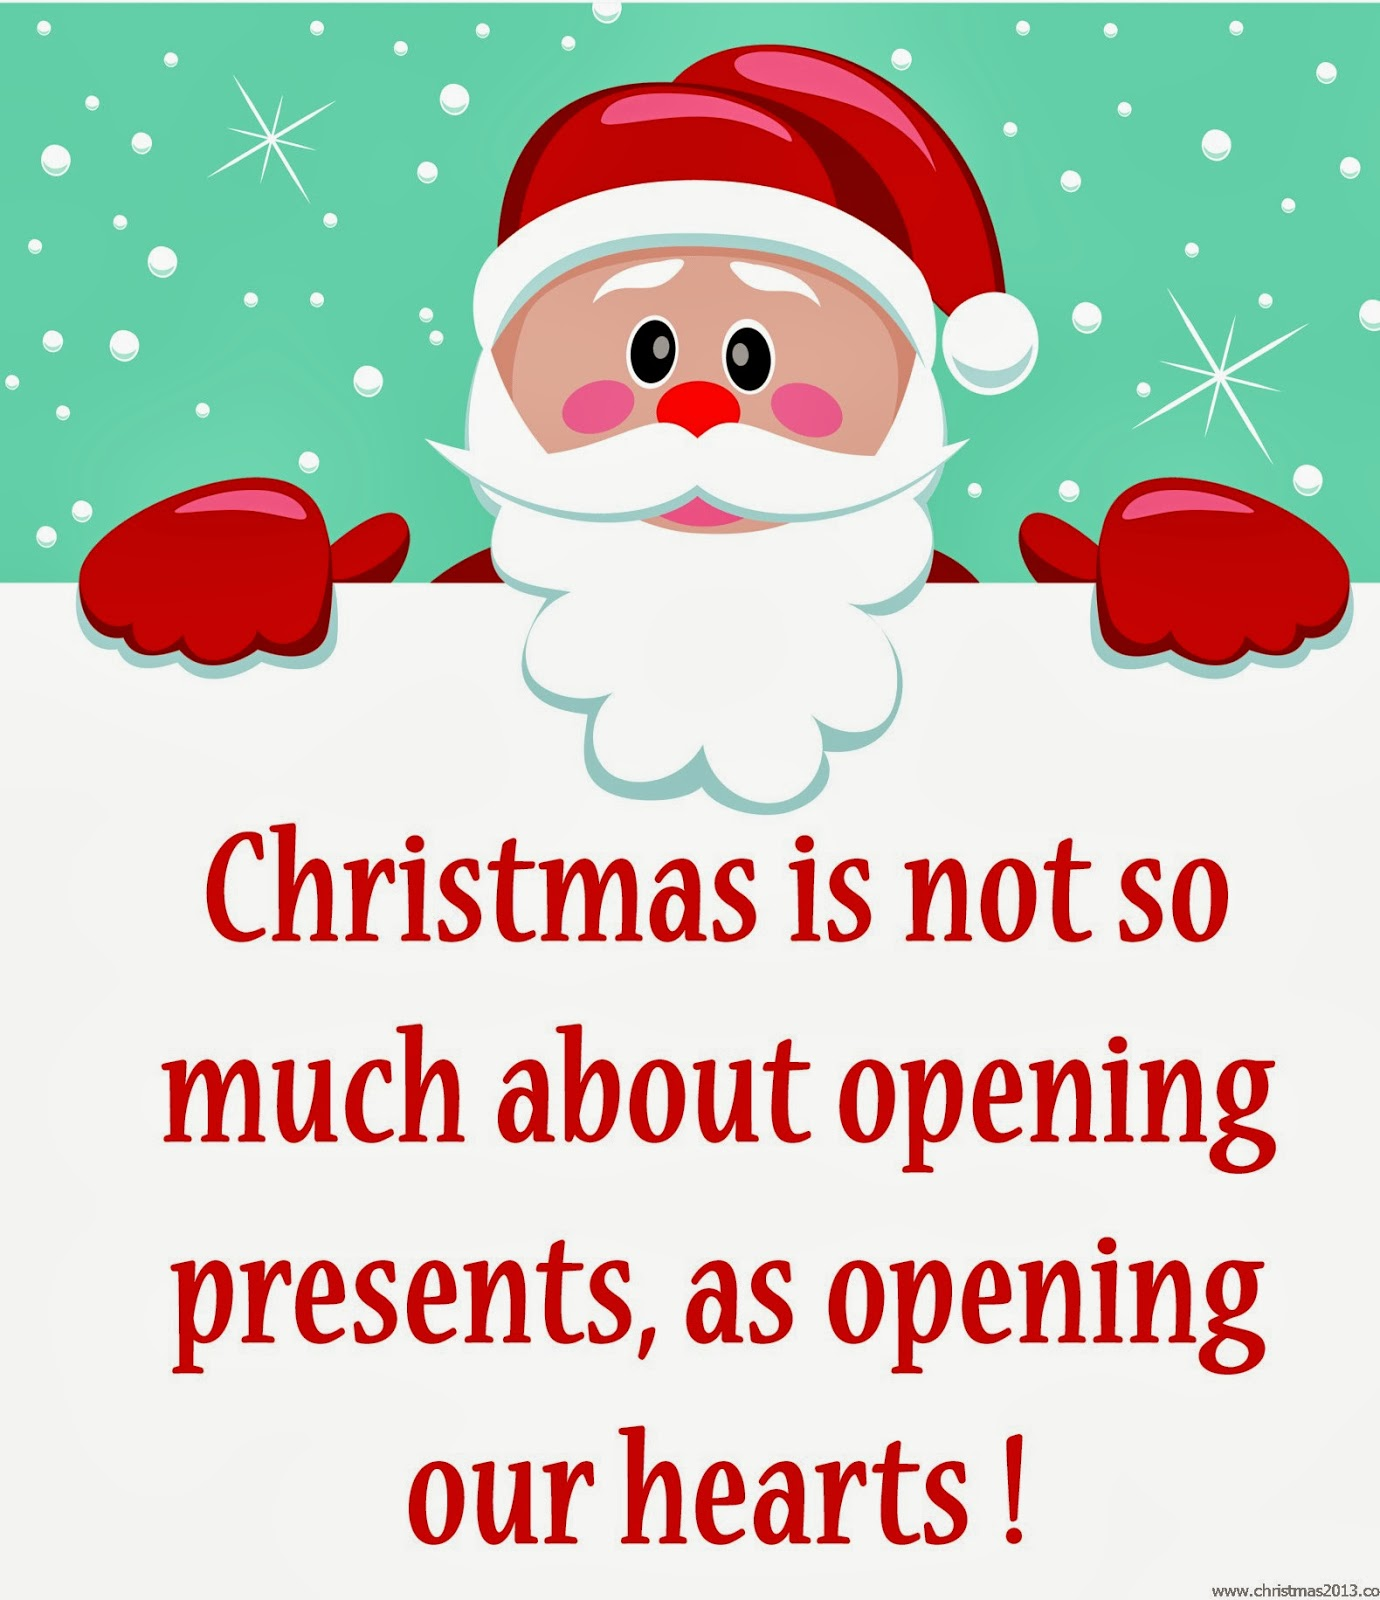 25 Best Christmas Quotes And Wishes - Quotes Hunter - Quotes, Sayings, Poems ...